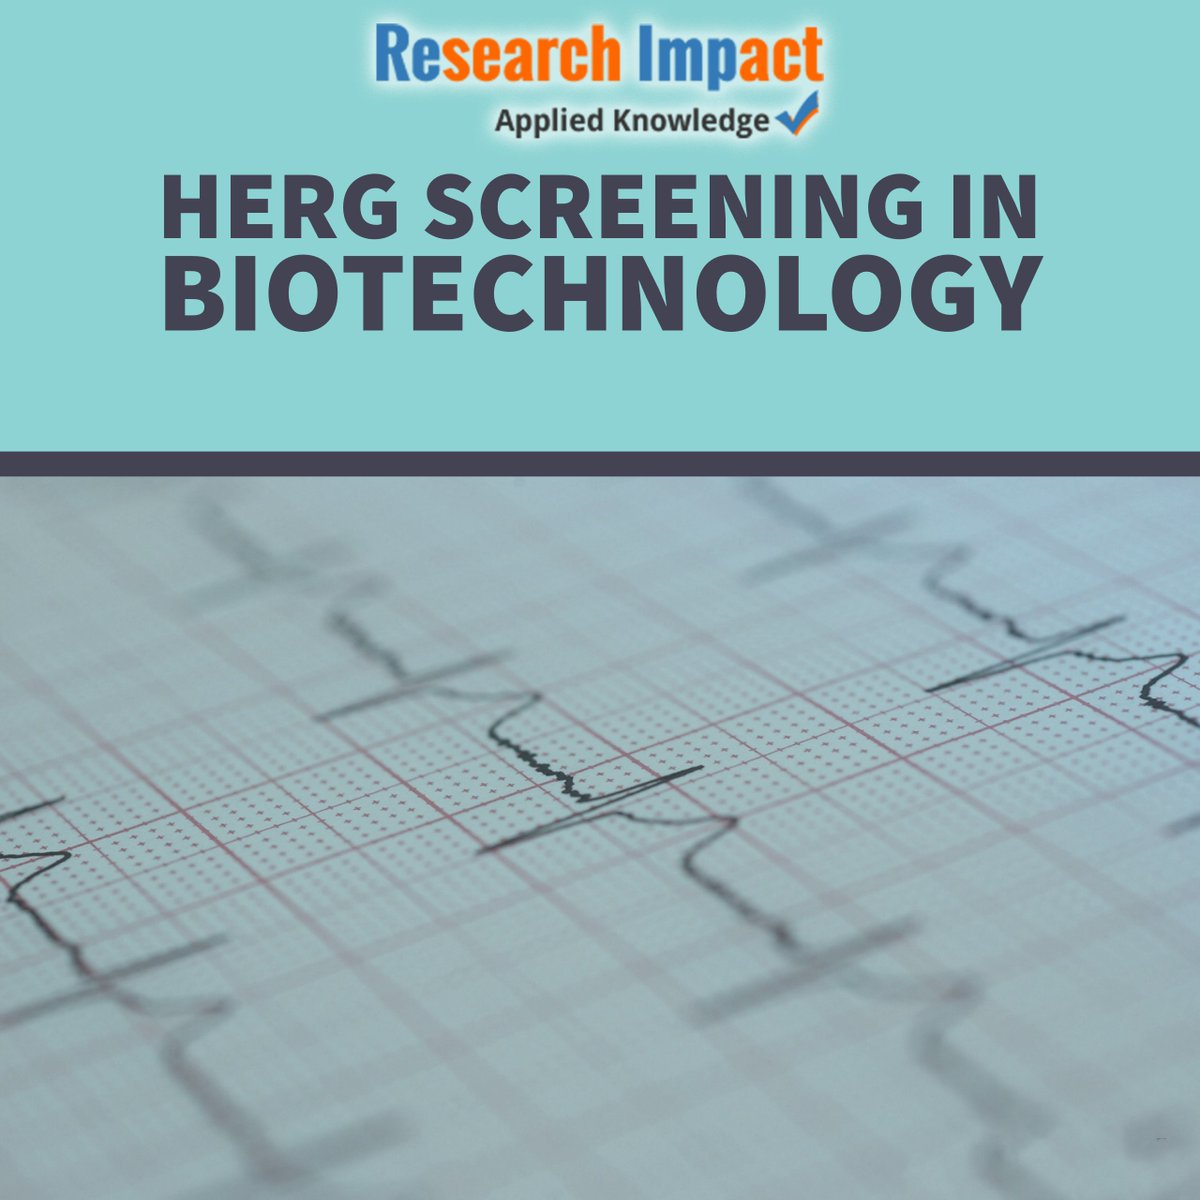 Herg Screening In Bio Technology #Biotechnolgy #HergScreening #ResearchImpact<br>http://pic.twitter.com/109Sfld2Nm